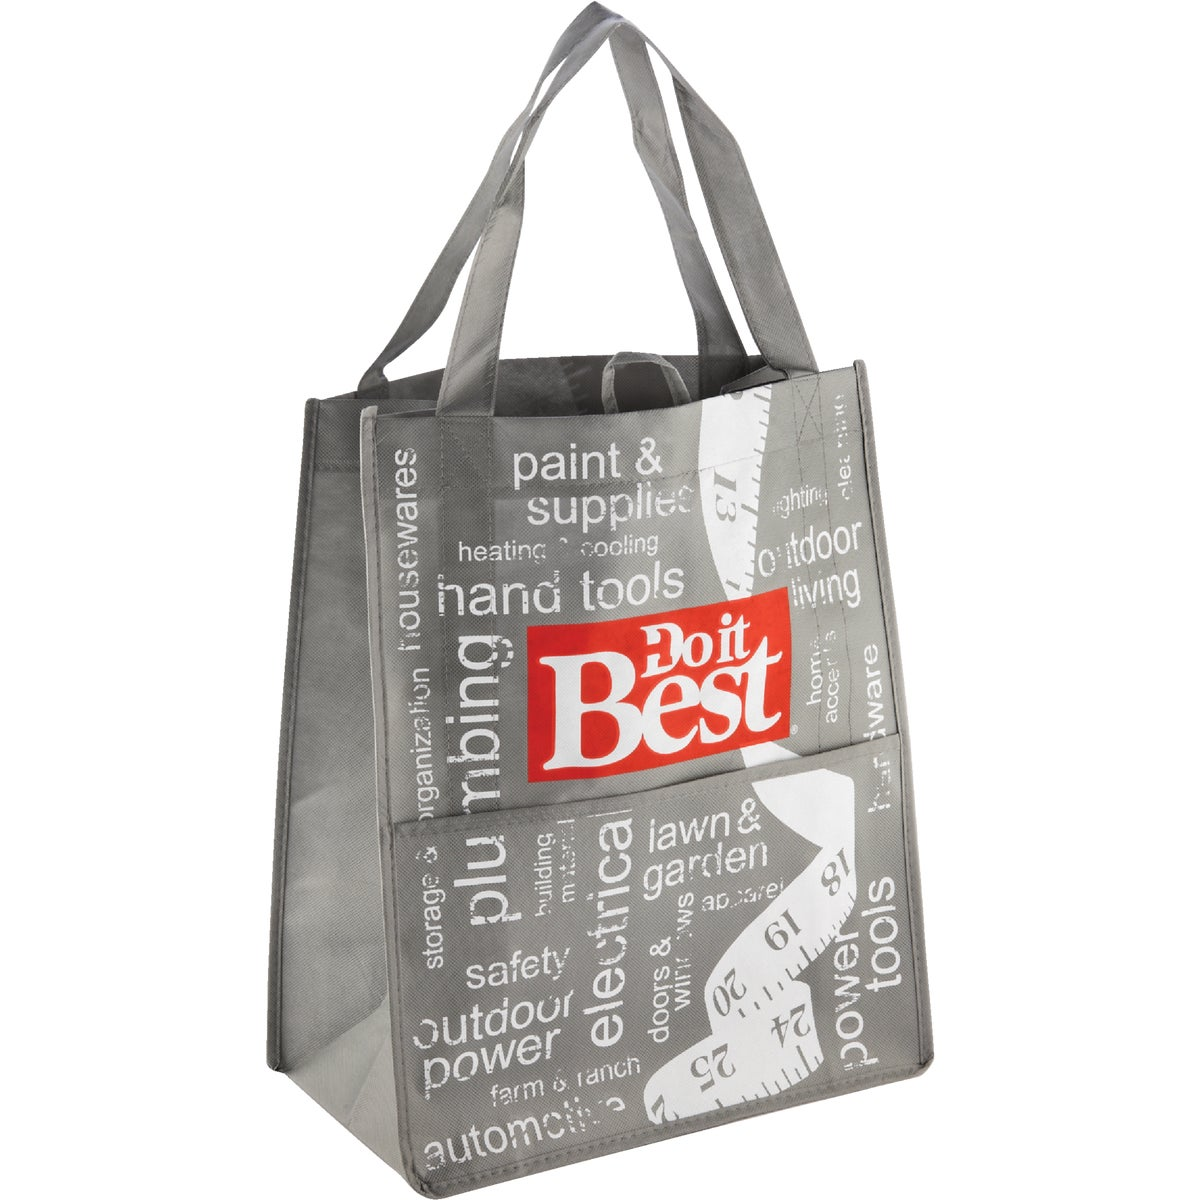 DO IT BEST TOTE BAG - EW756R by Earthwise Bag Co